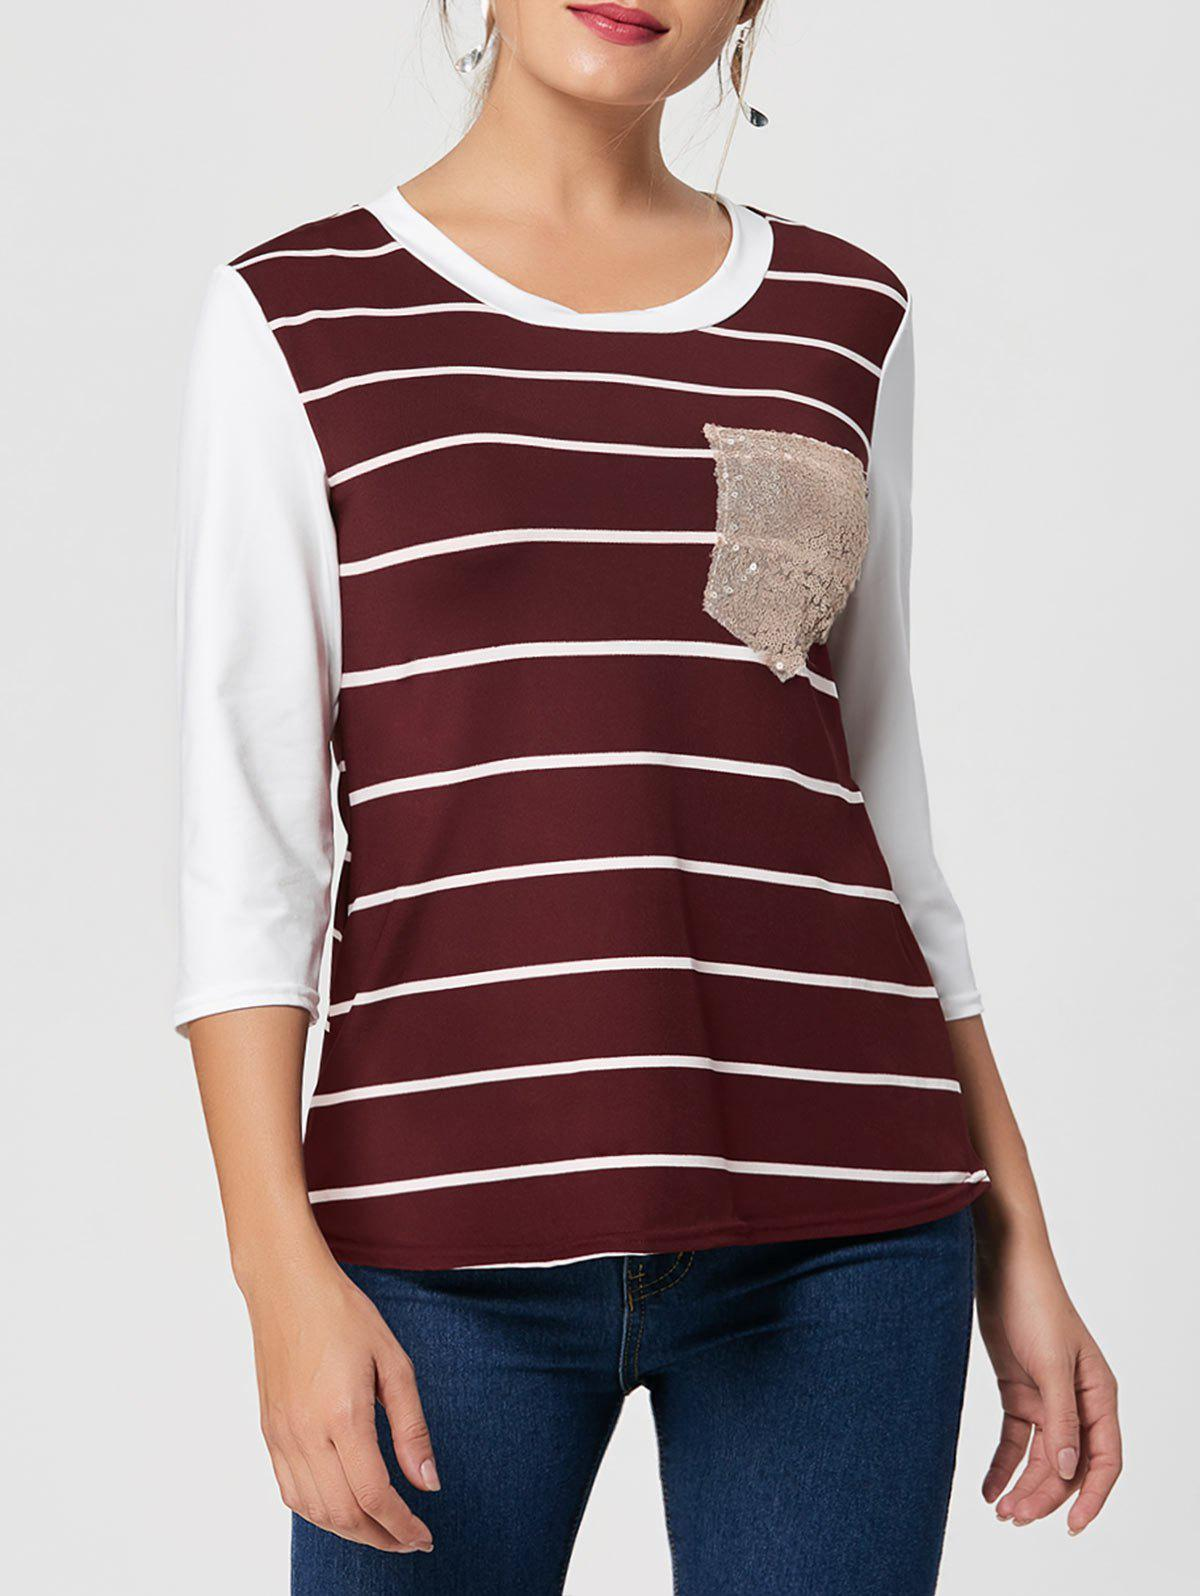 Sequin Pocket Striped Tee - WINE RED 2XL